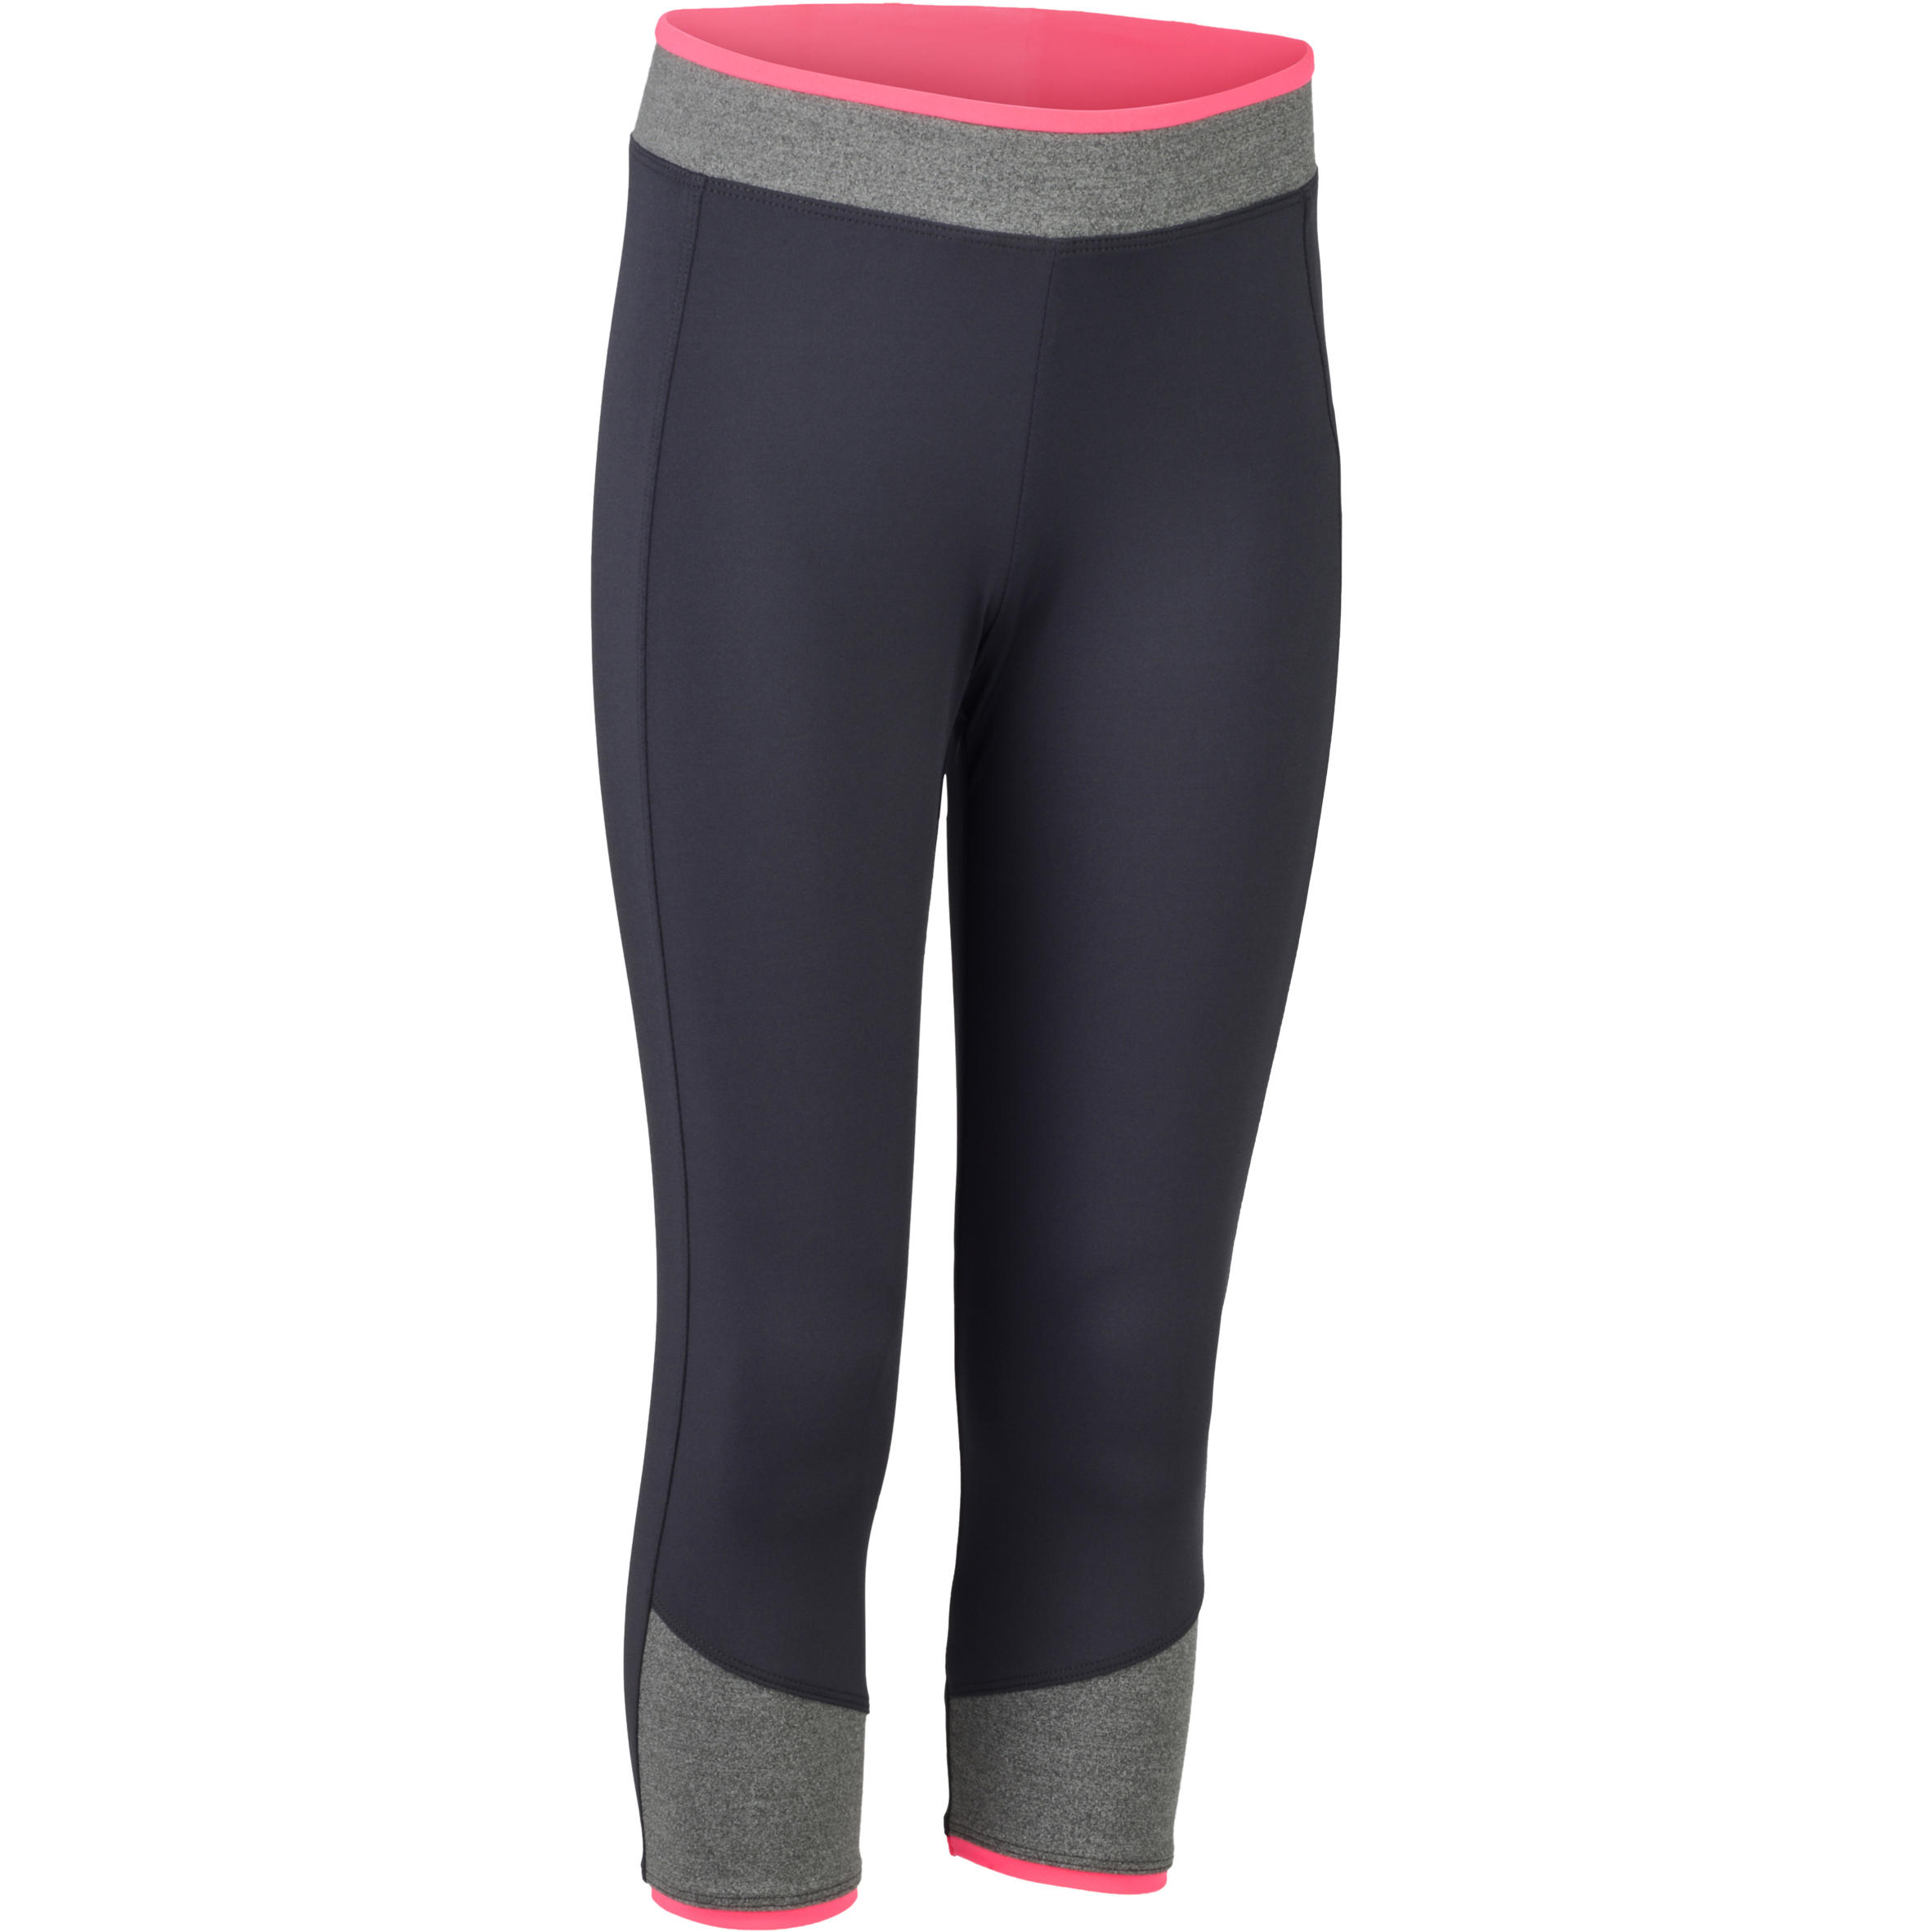 S500 Girls' Gym Cropped Bottoms - Grey/Pink